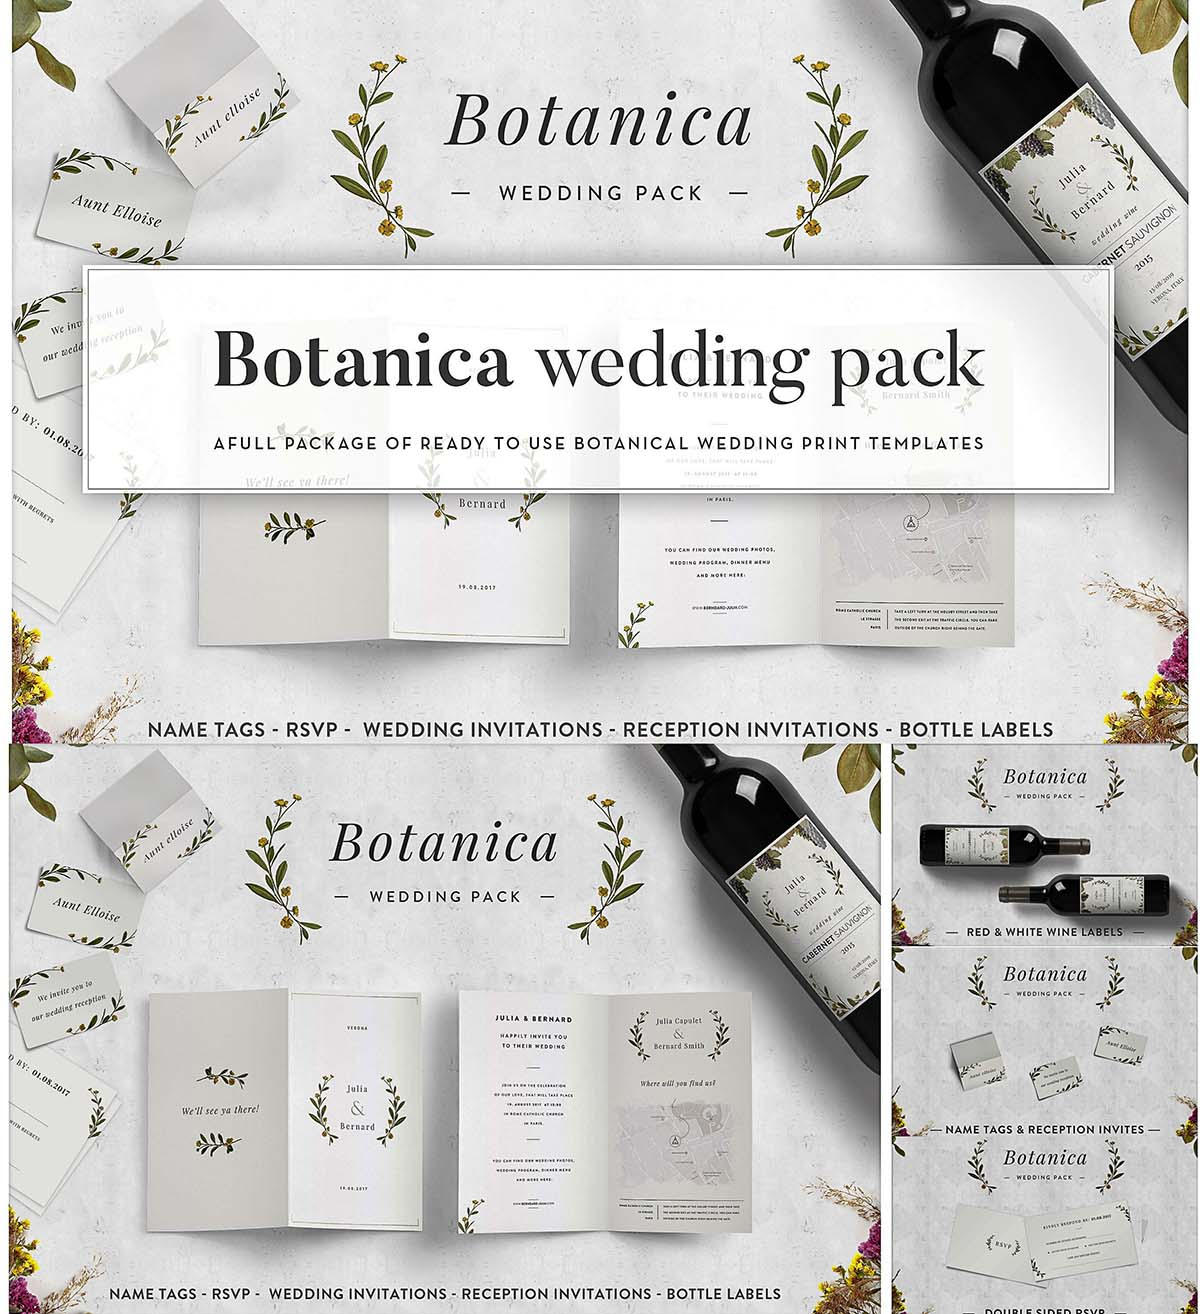 Botanica Wedding Pack Print Free